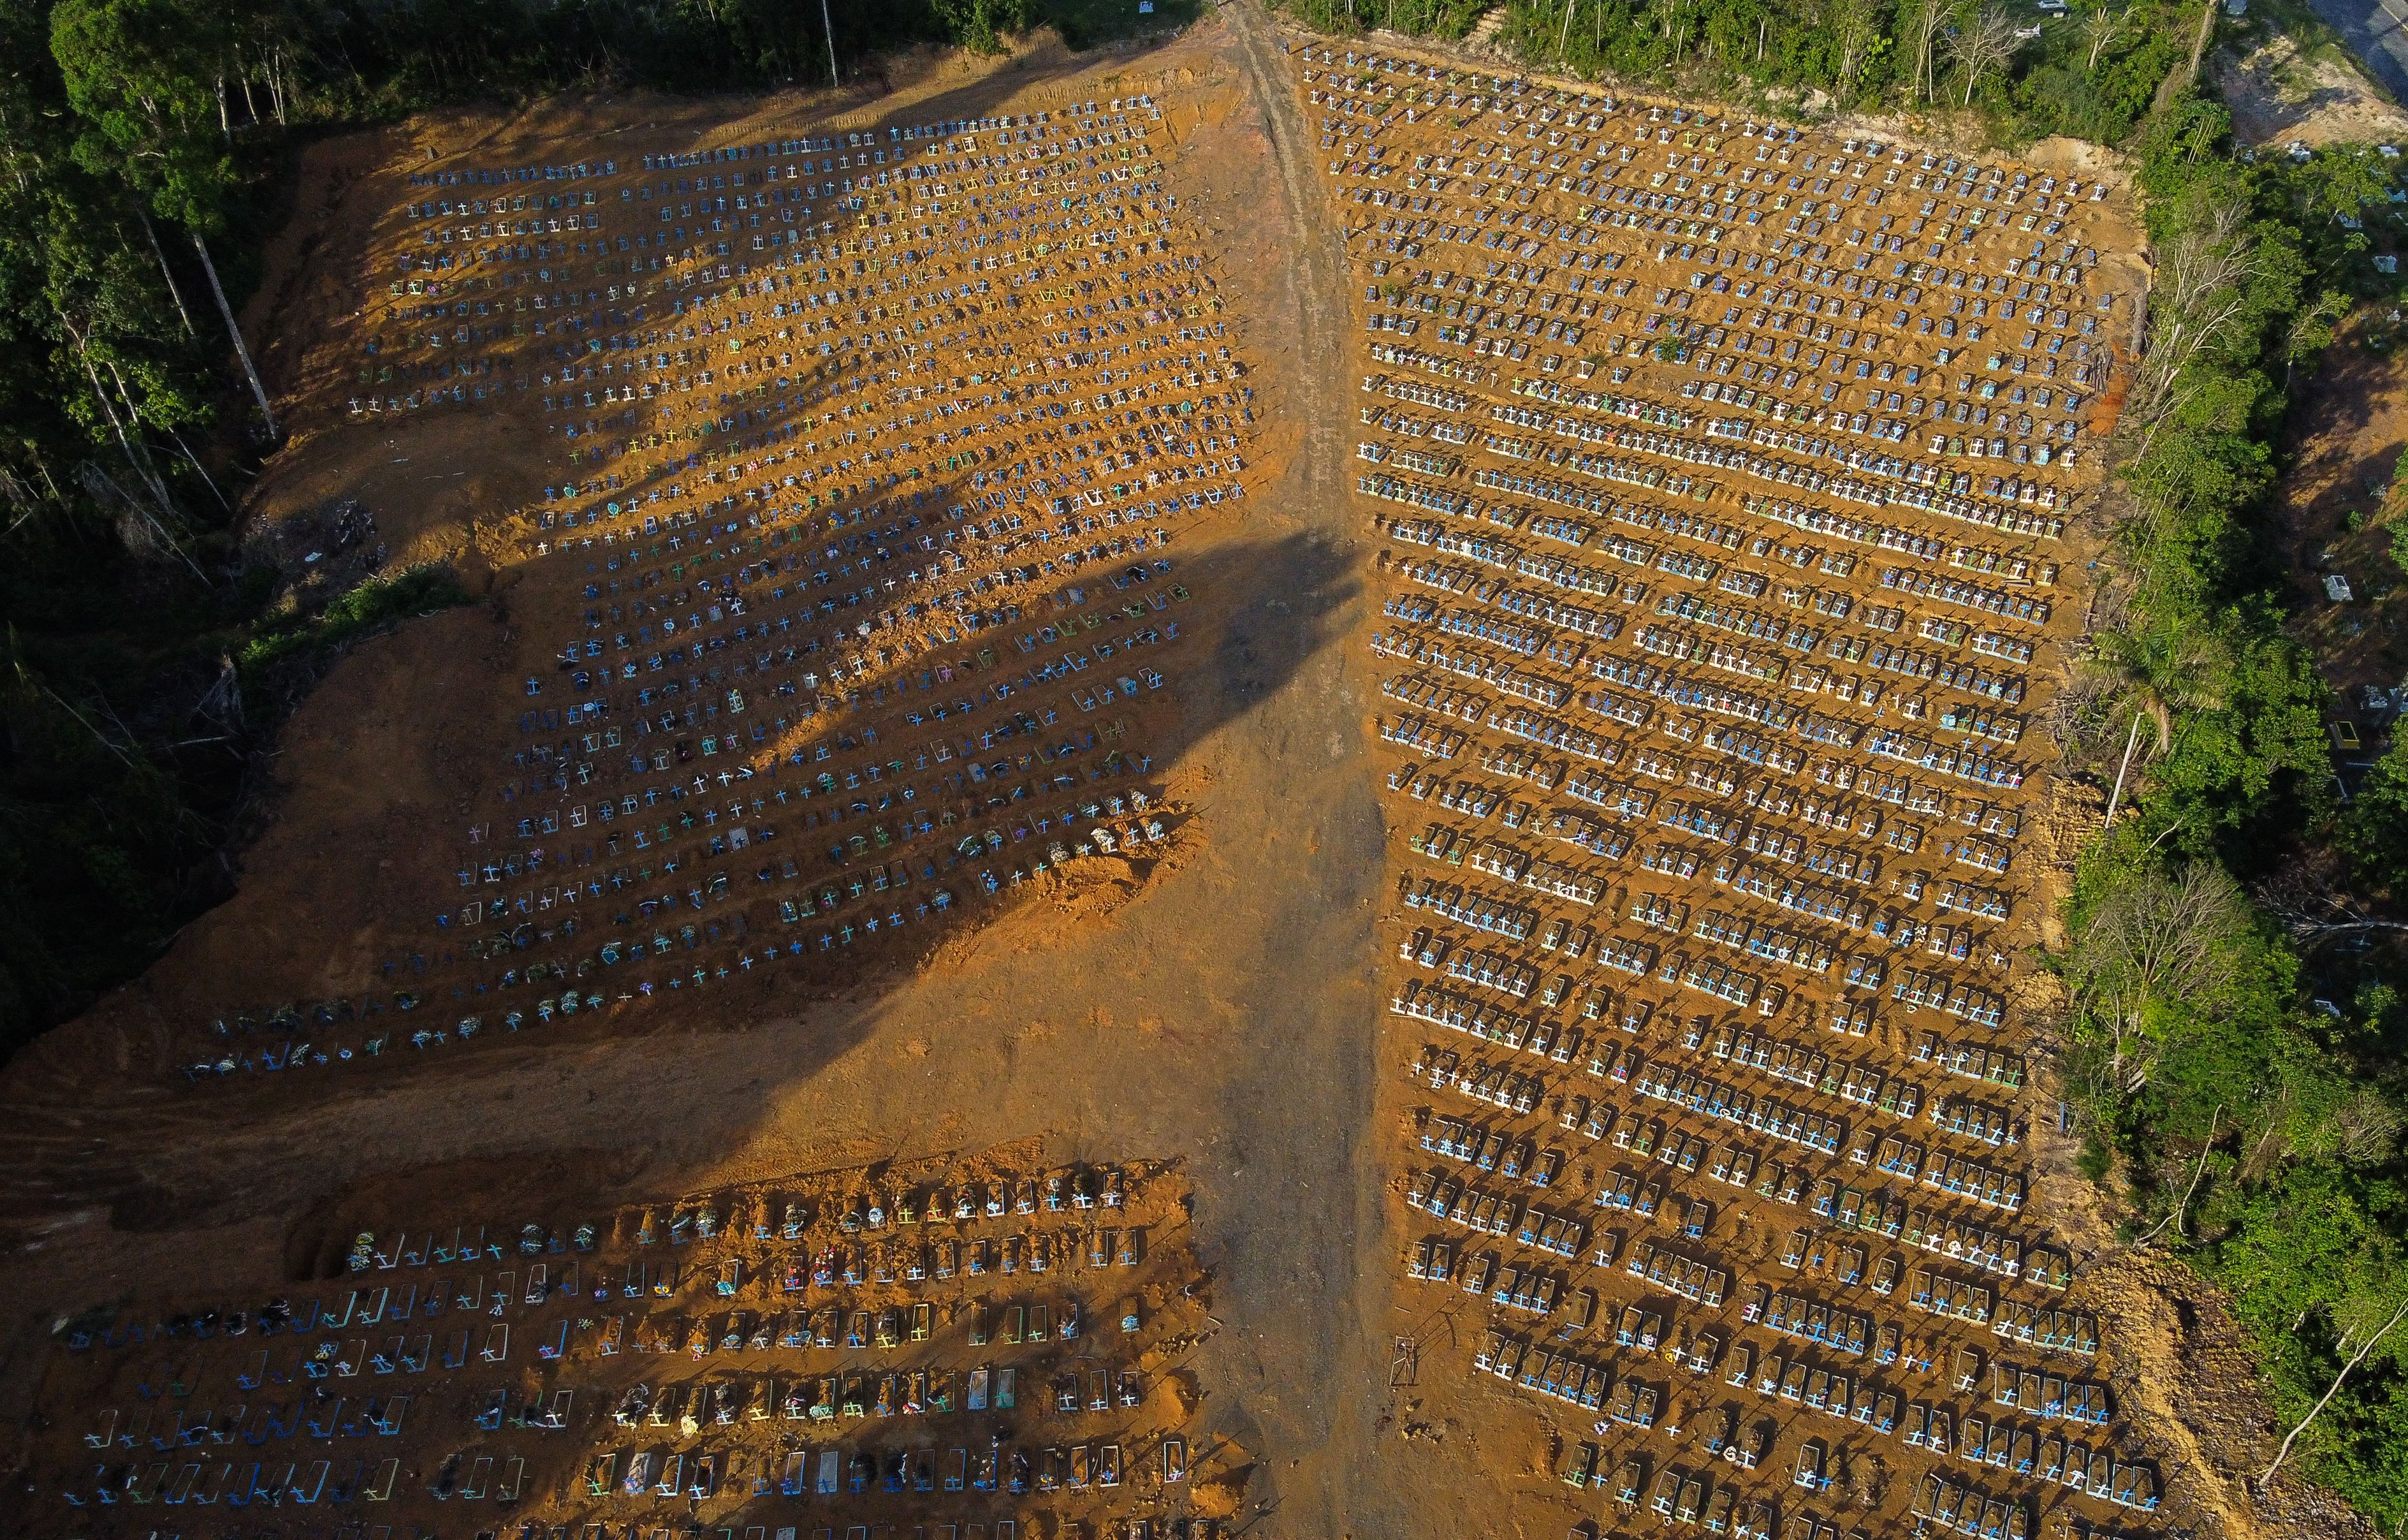 Aerial view of the burial site reserved for victims of the COVID pandemic at the Nossa Senhora Aparecida cemetery in Manaus, in the Amazon forest in Brazil on November 21, 2020. - Brazil has been one of the countries hit hardest by the pandemic, with more than 166,000 people killed, the second-highest number in the world, following the United States and is bracing for a possible second wave of mass infections as it races to test and then distribute its first 120,000 doses of Coronavac, a potential COVID-19 vaccine developed by Chinese lab Sinovac Biotech. (Photo by MICHAEL DANTAS / AFP) (Photo by MICHAEL DANTAS/AFP via Getty Images)